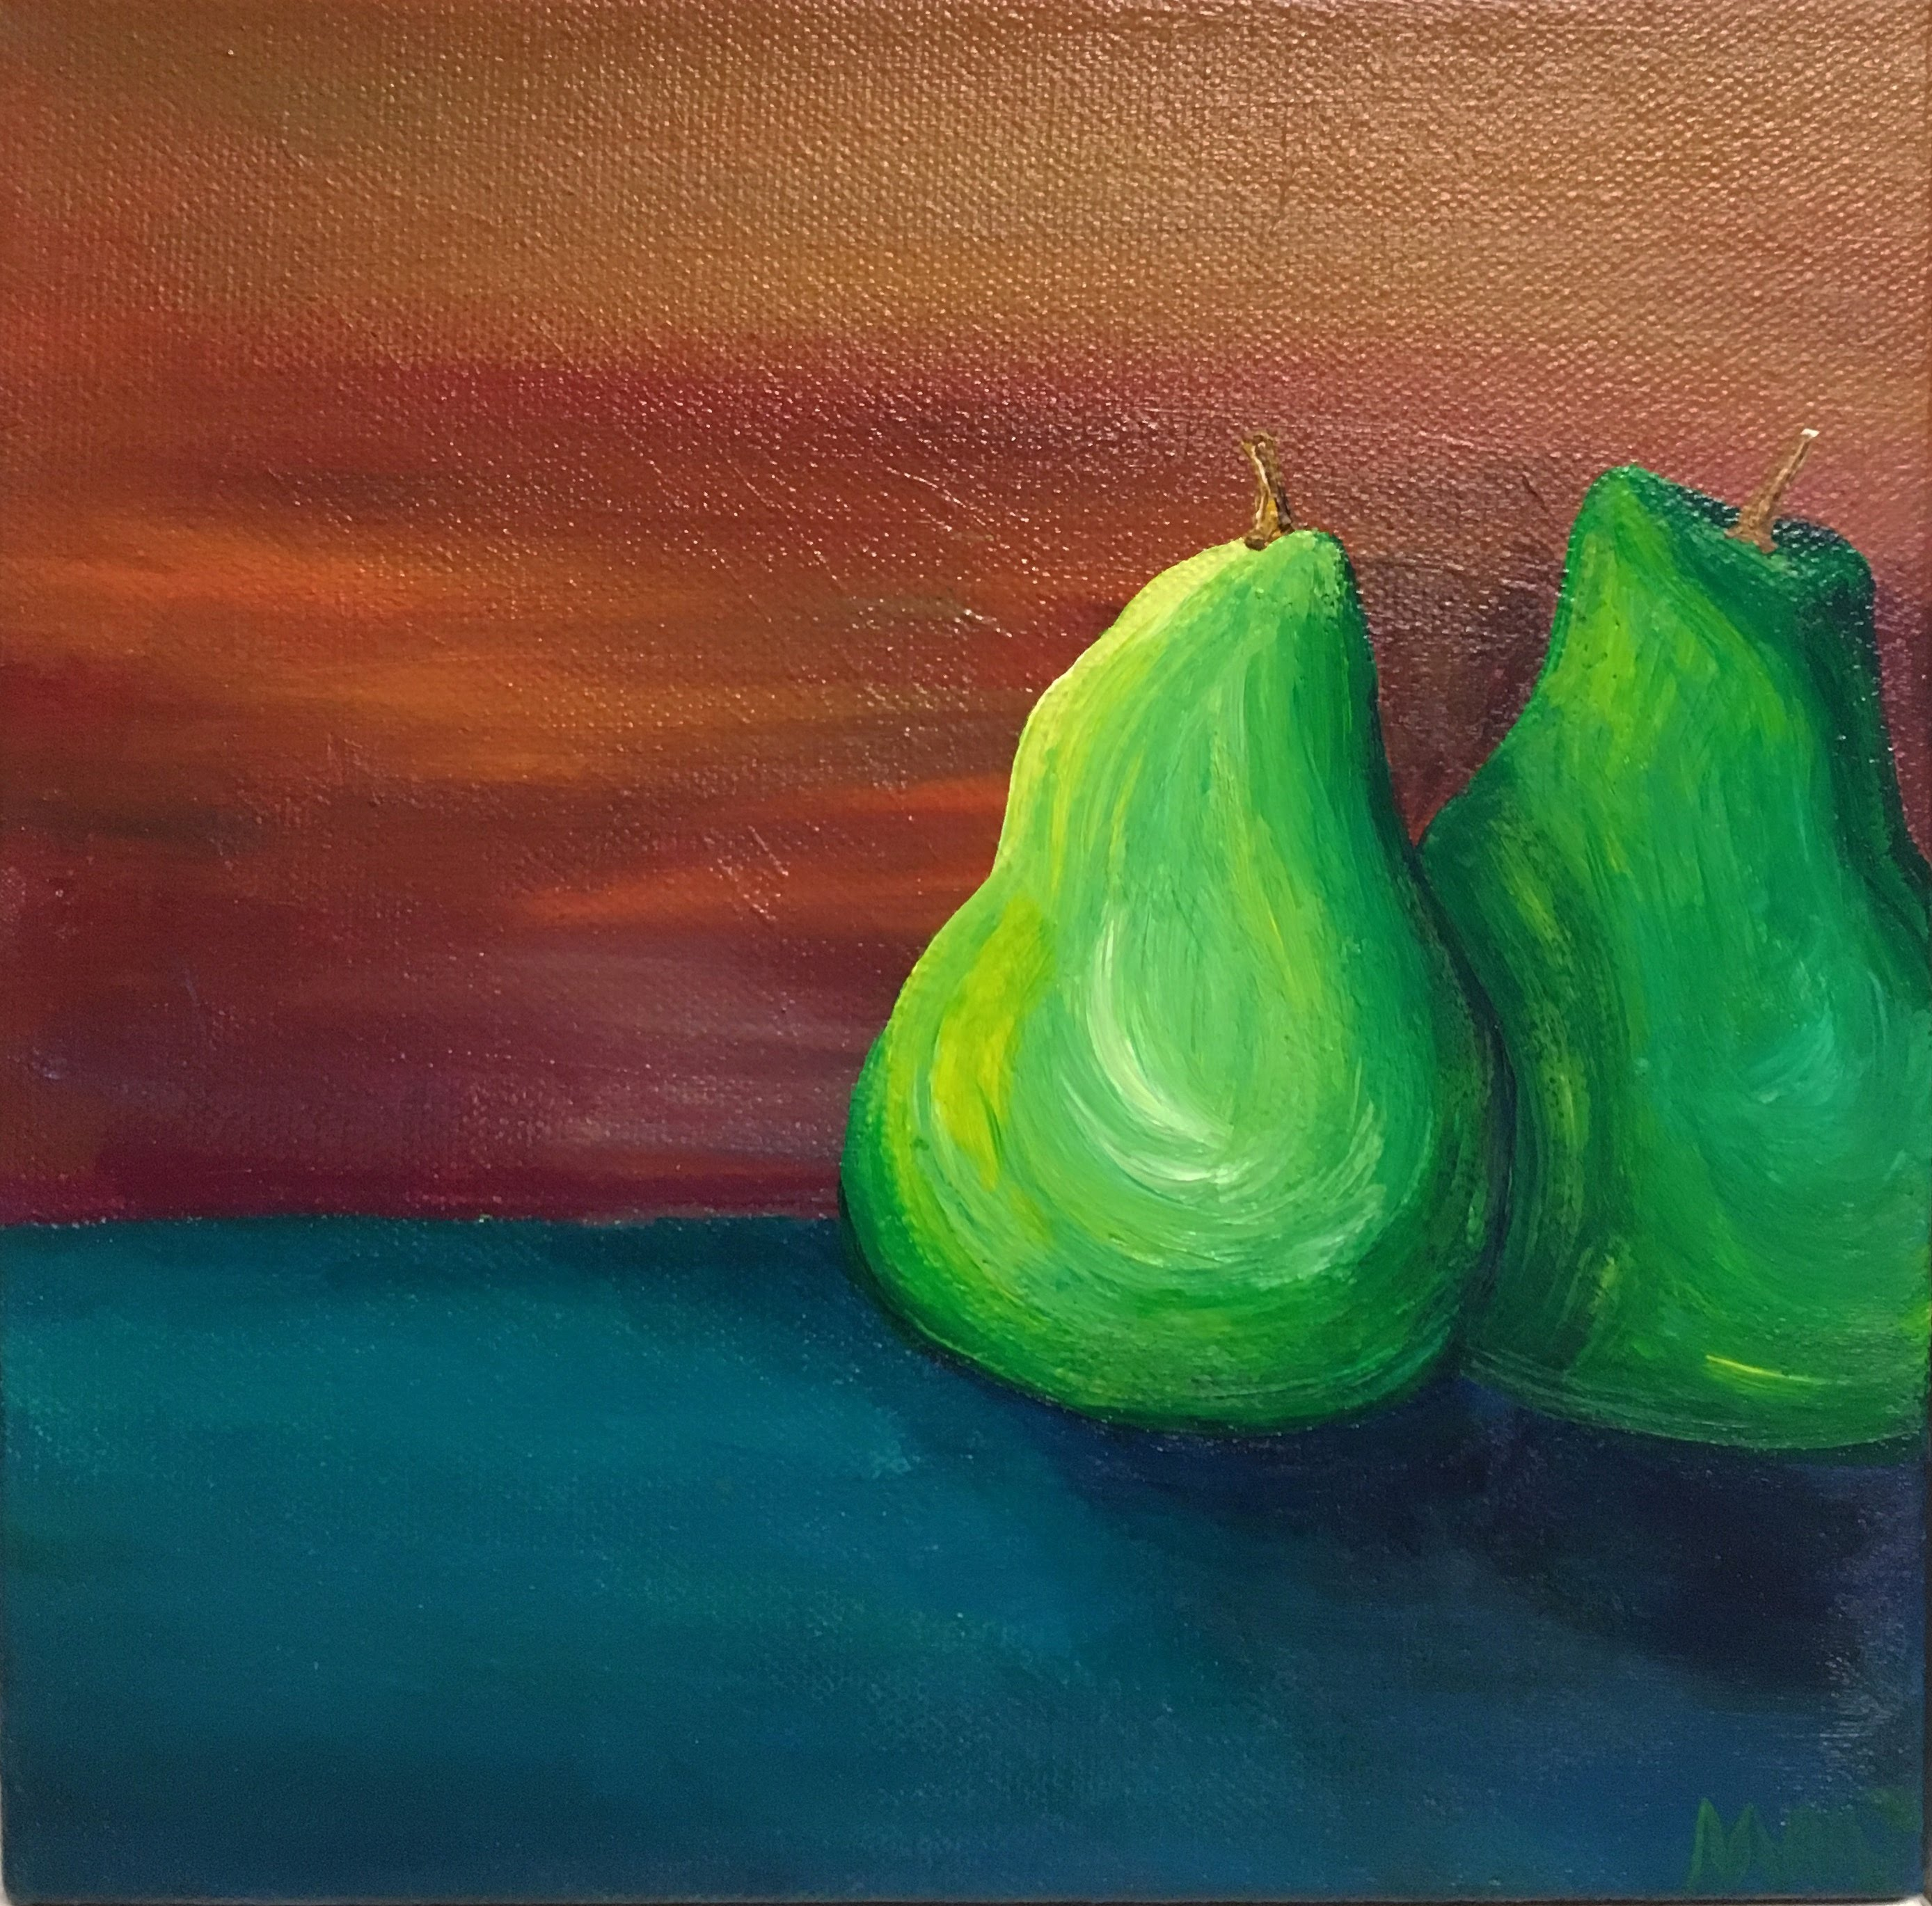 Pears, acrylic on canvas